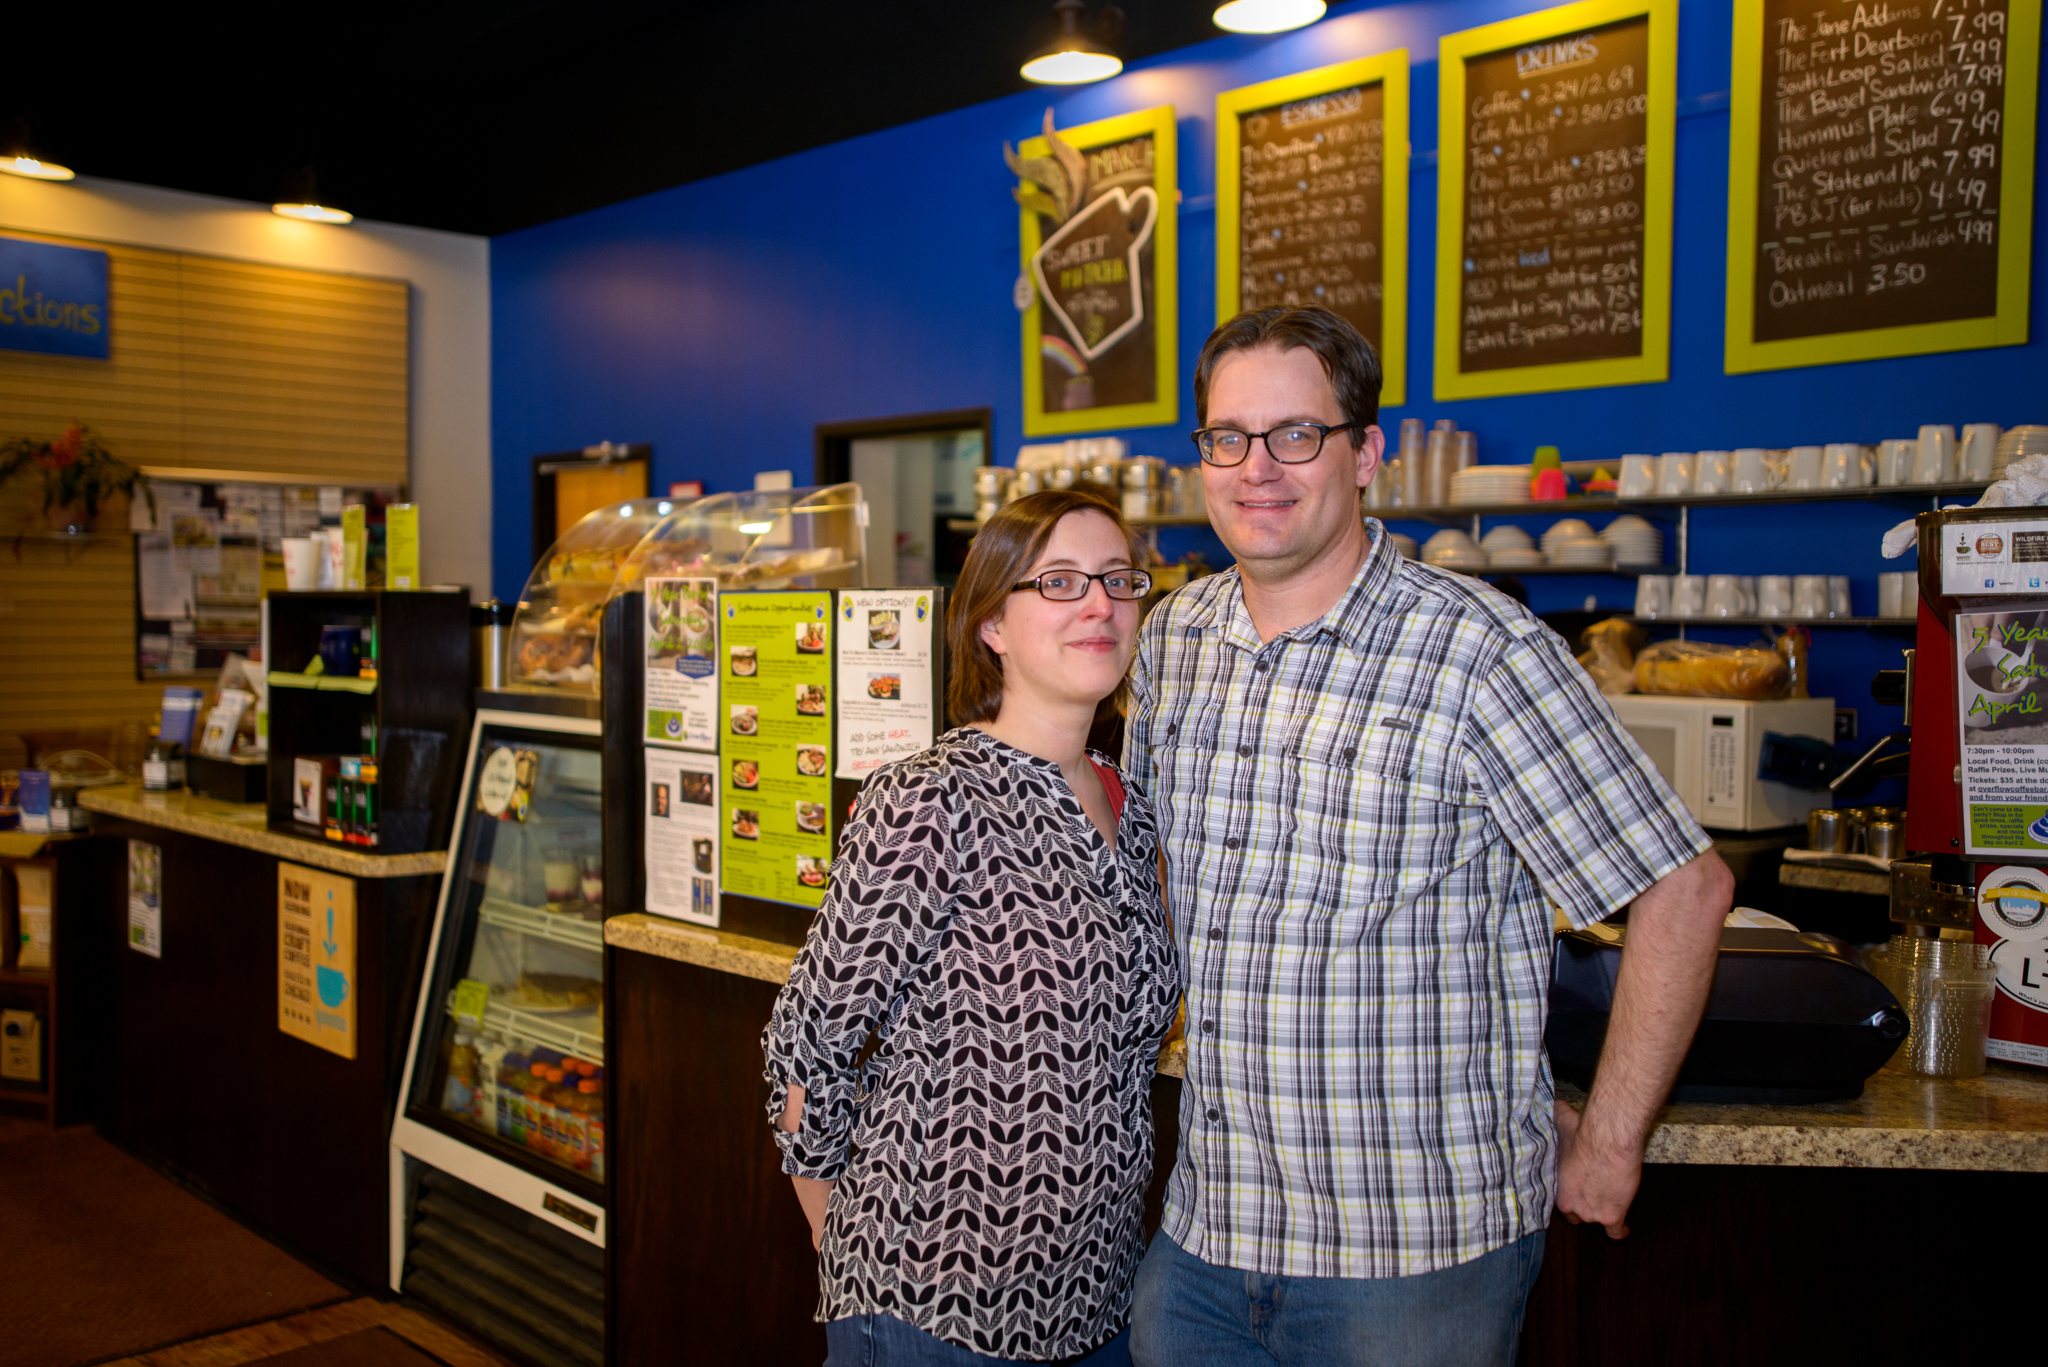 Caption: Overflow Coffee Bar - Brandon & Amanda Neely - Chicago